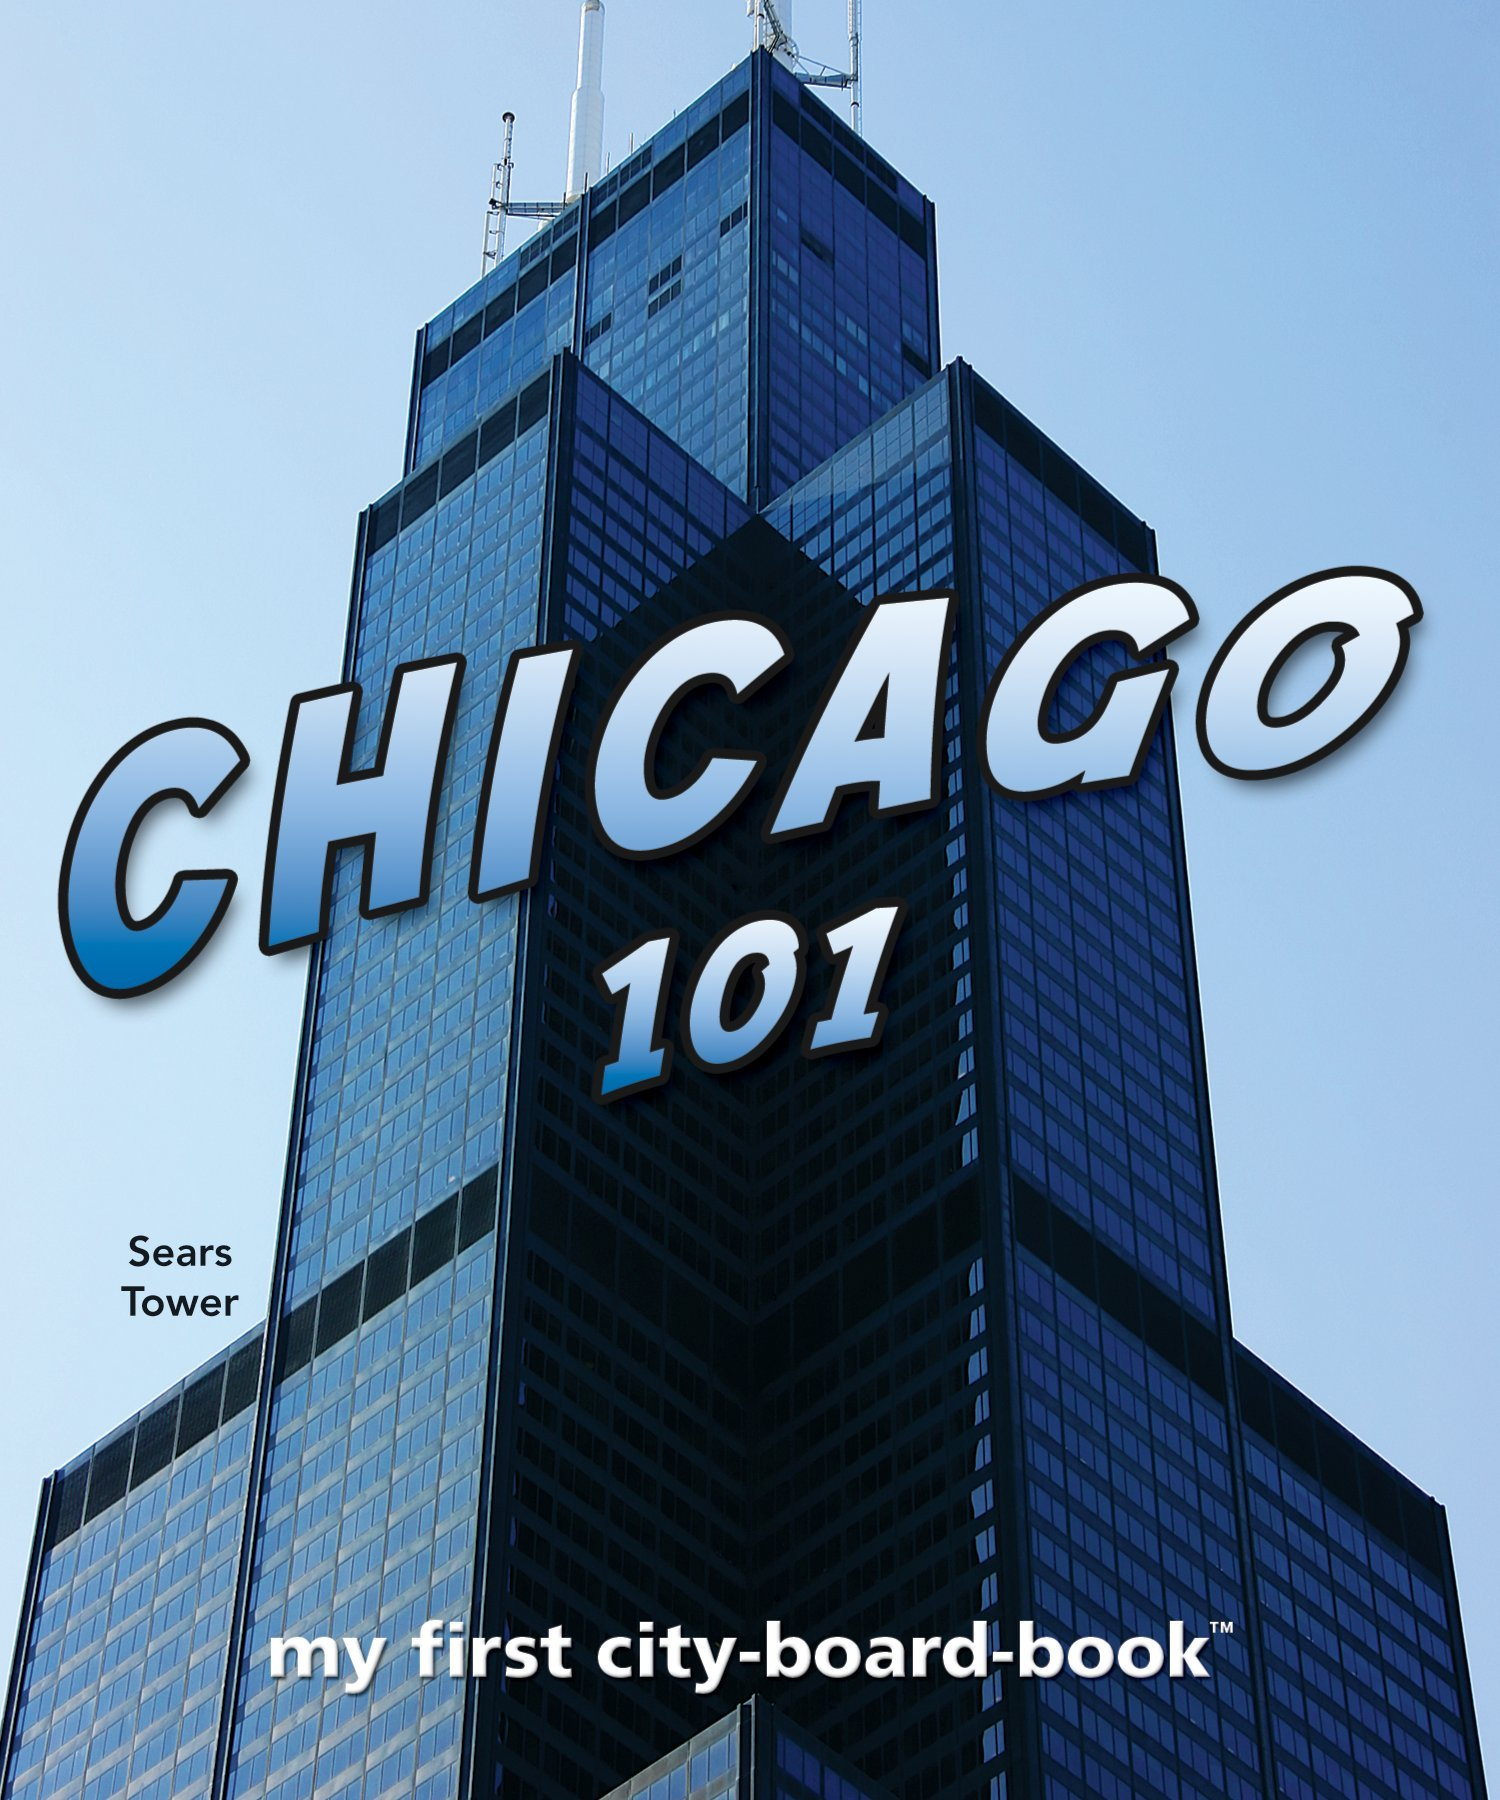 Download Chicago 101: My First City-board-book (101 Board Books) Text fb2 ebook